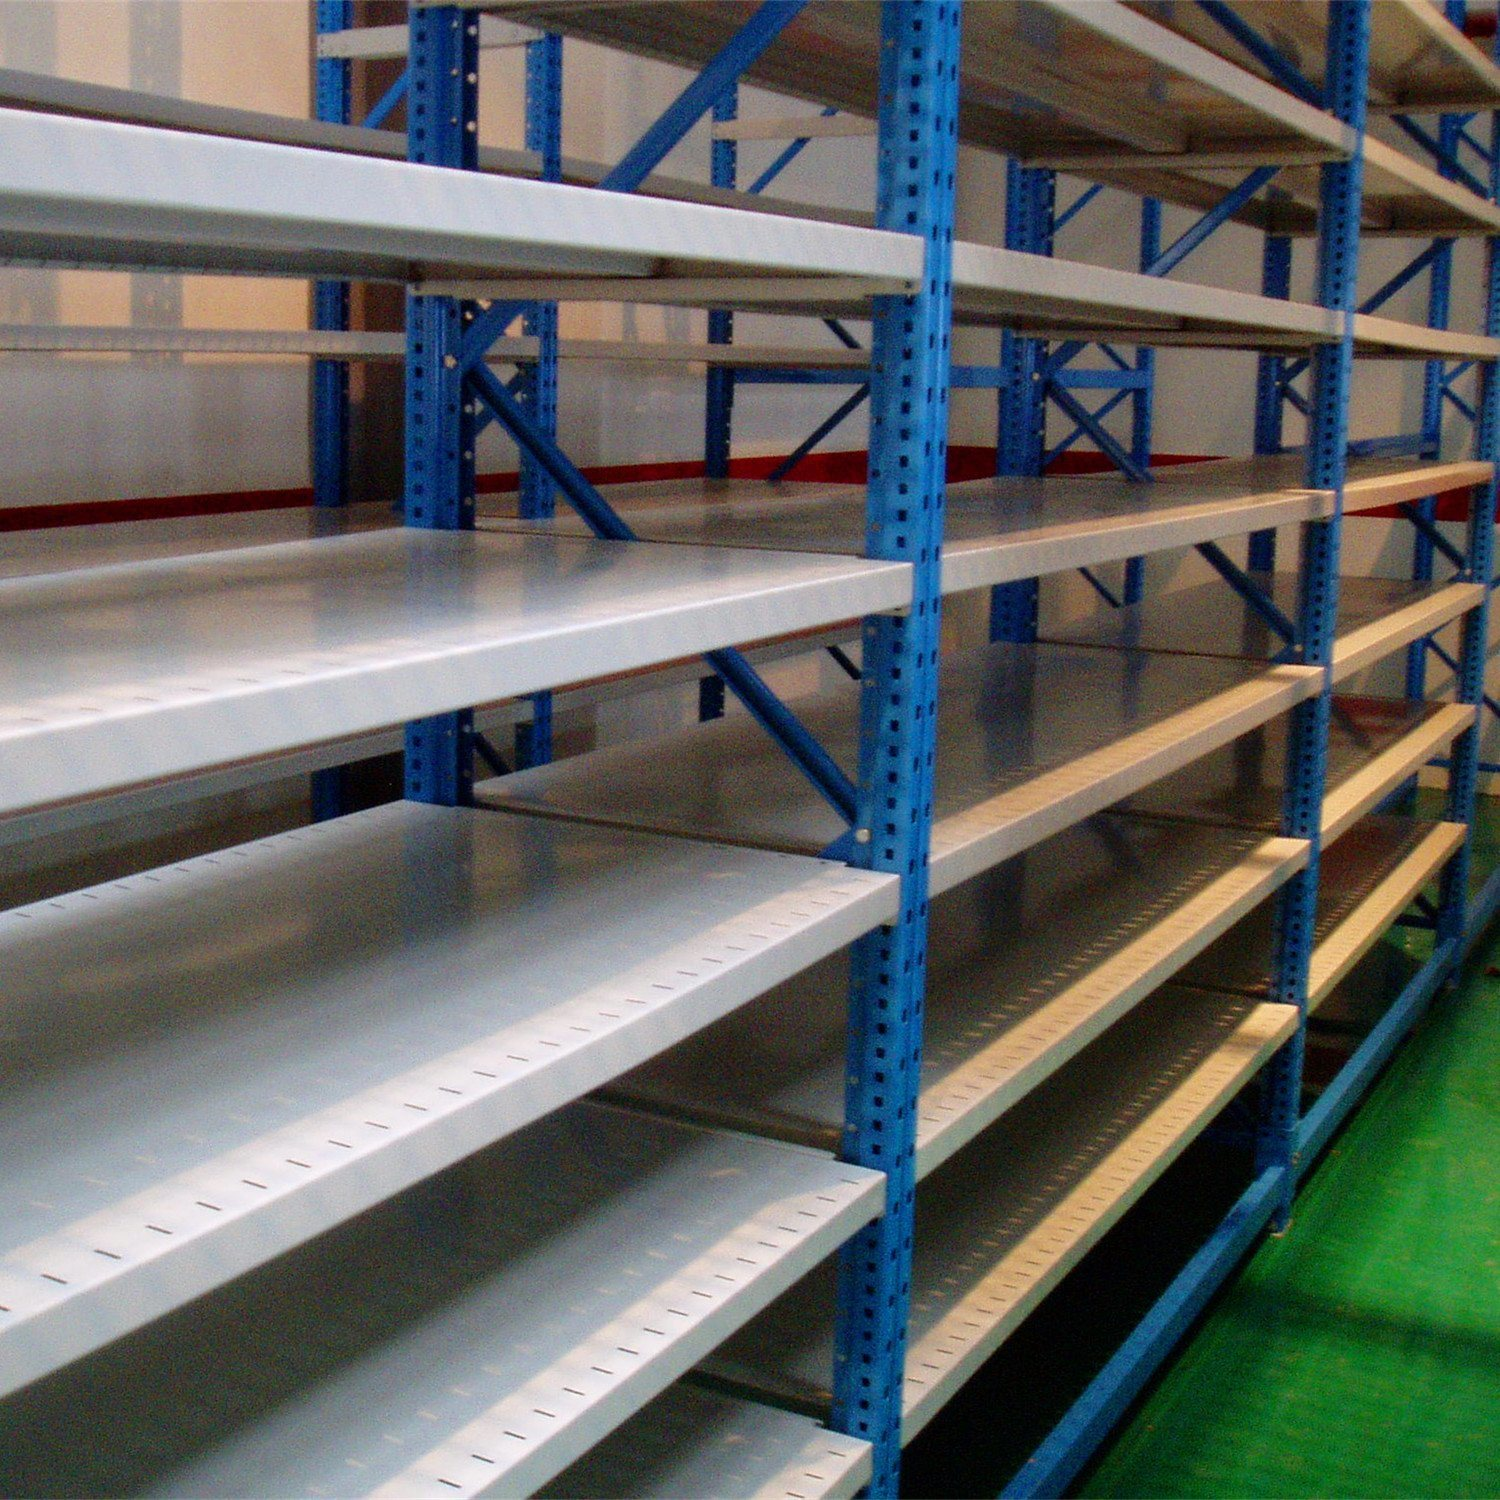 Hot Item High Quality Metal Boltless Shelving For Warehouse Storage